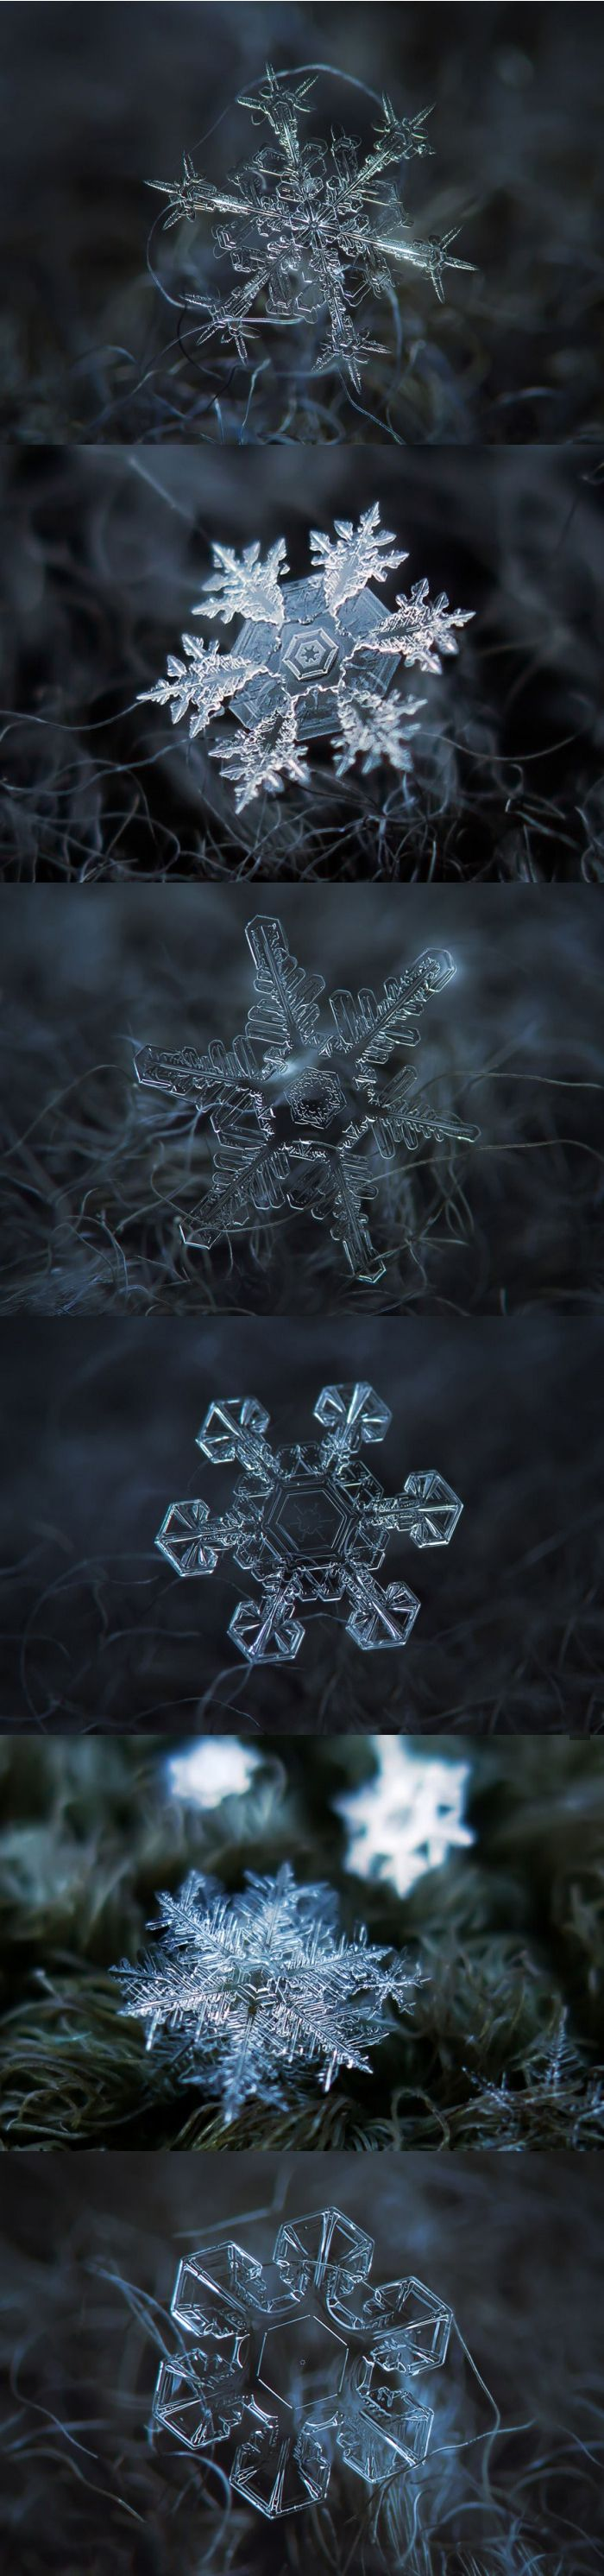 Snowflake close-ups by Russian photographer Alexey Kljatov.